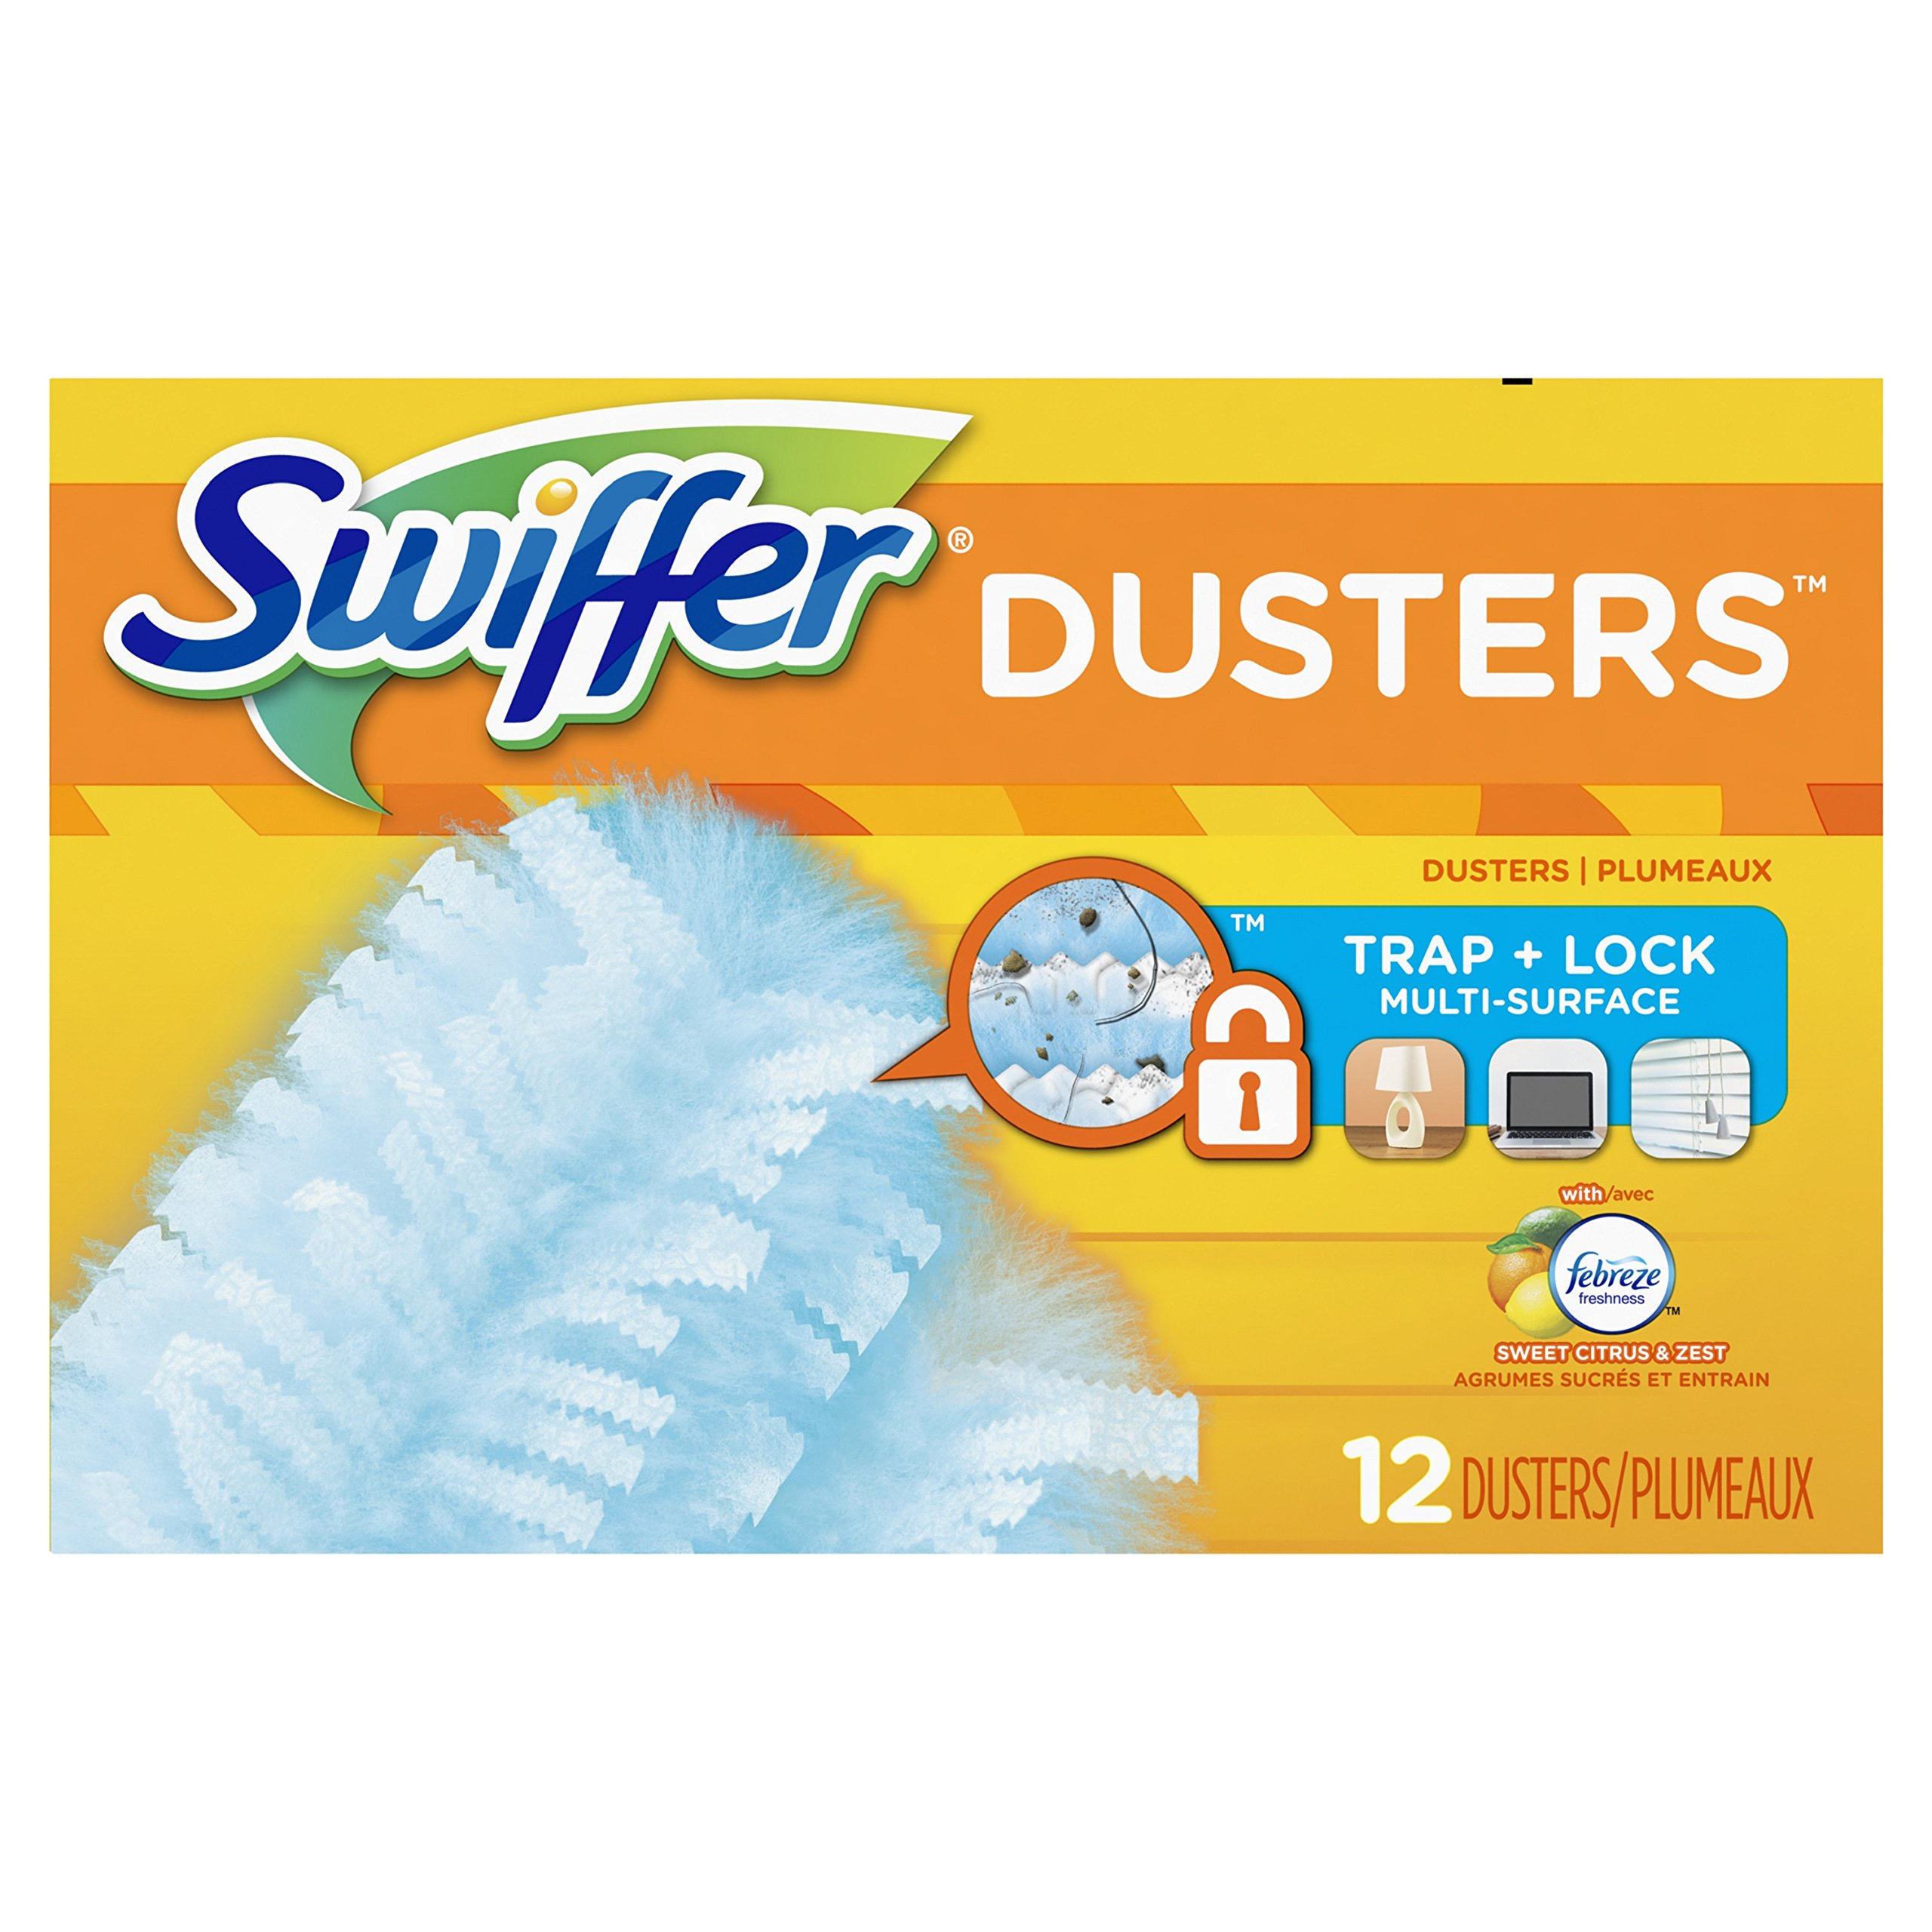 Swiffer Dusters Disposable Cleaning Dusters Refills Febreze Sweet Citrus and Zest Scent, 12 Count by Swiffer